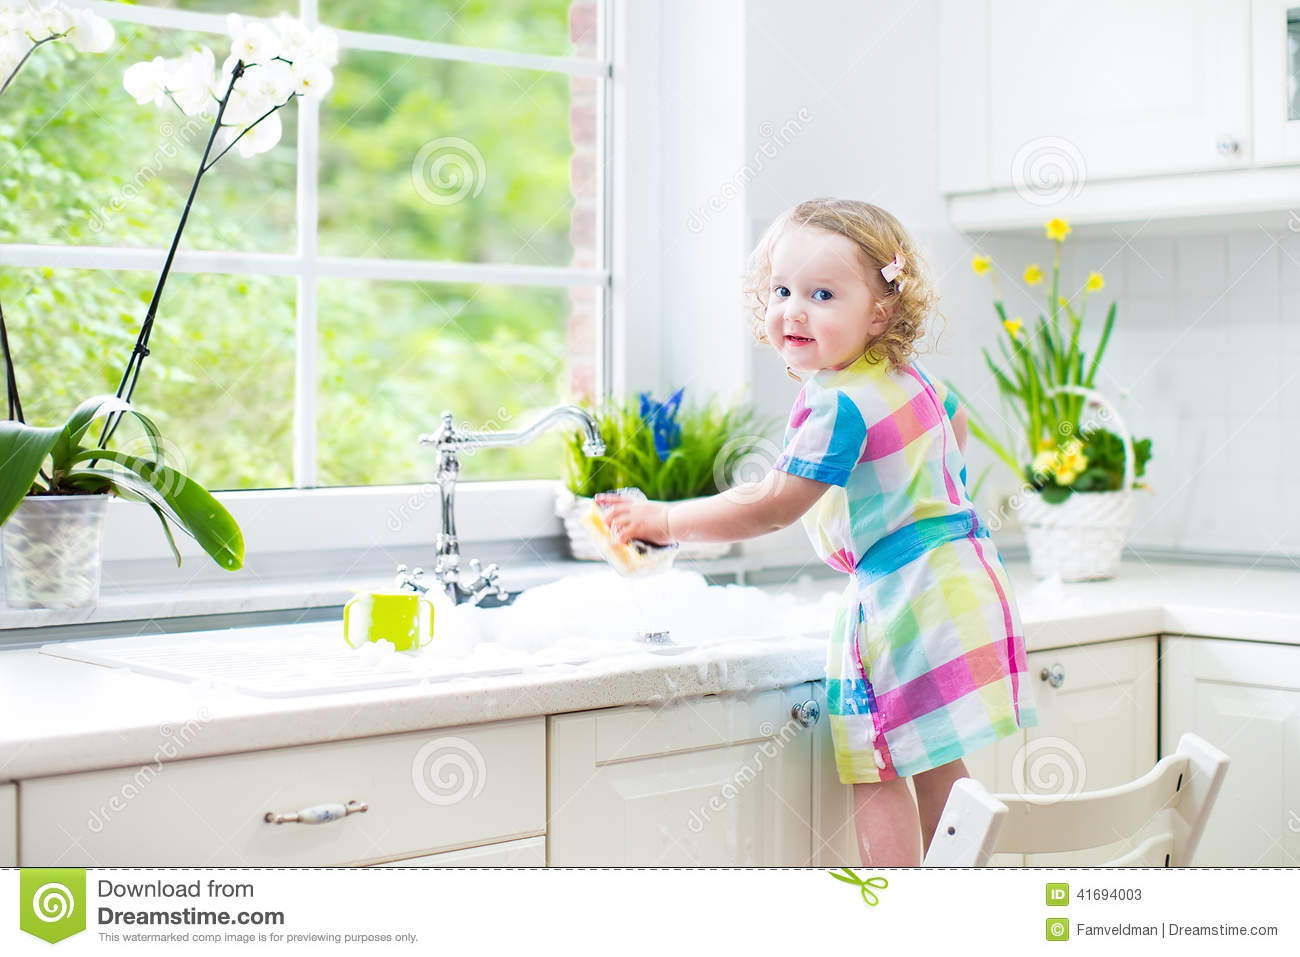 Cute curly toddler girl in colorful dress washing dishes